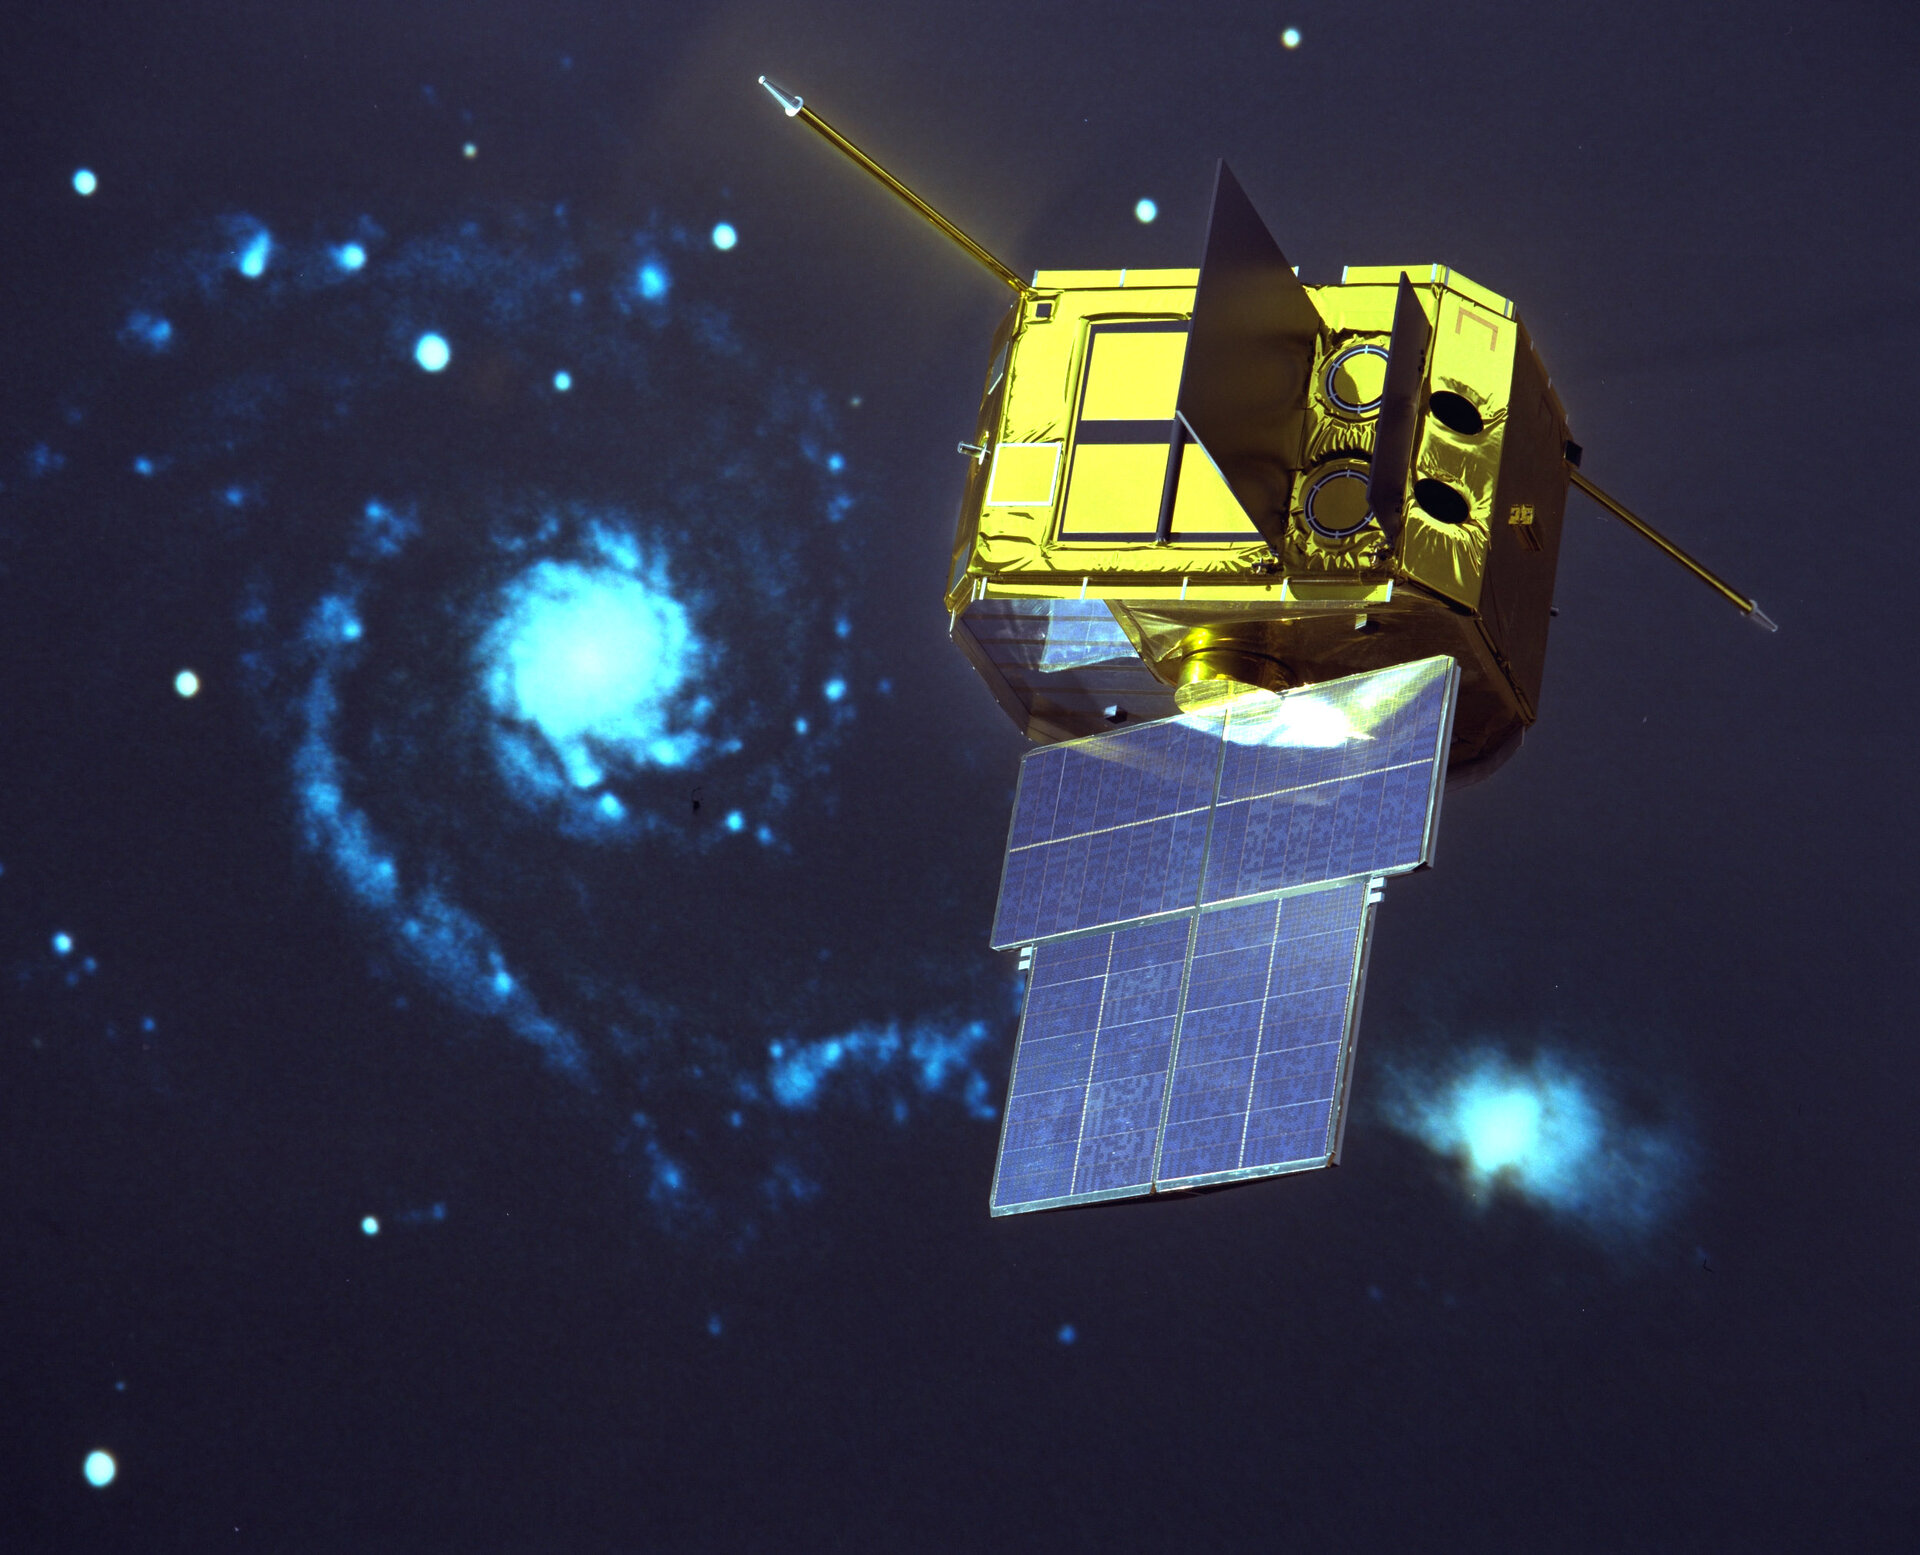 Model of ESA's Exosat X-ray satellite with the Whirlpool Galaxy as a backdrop